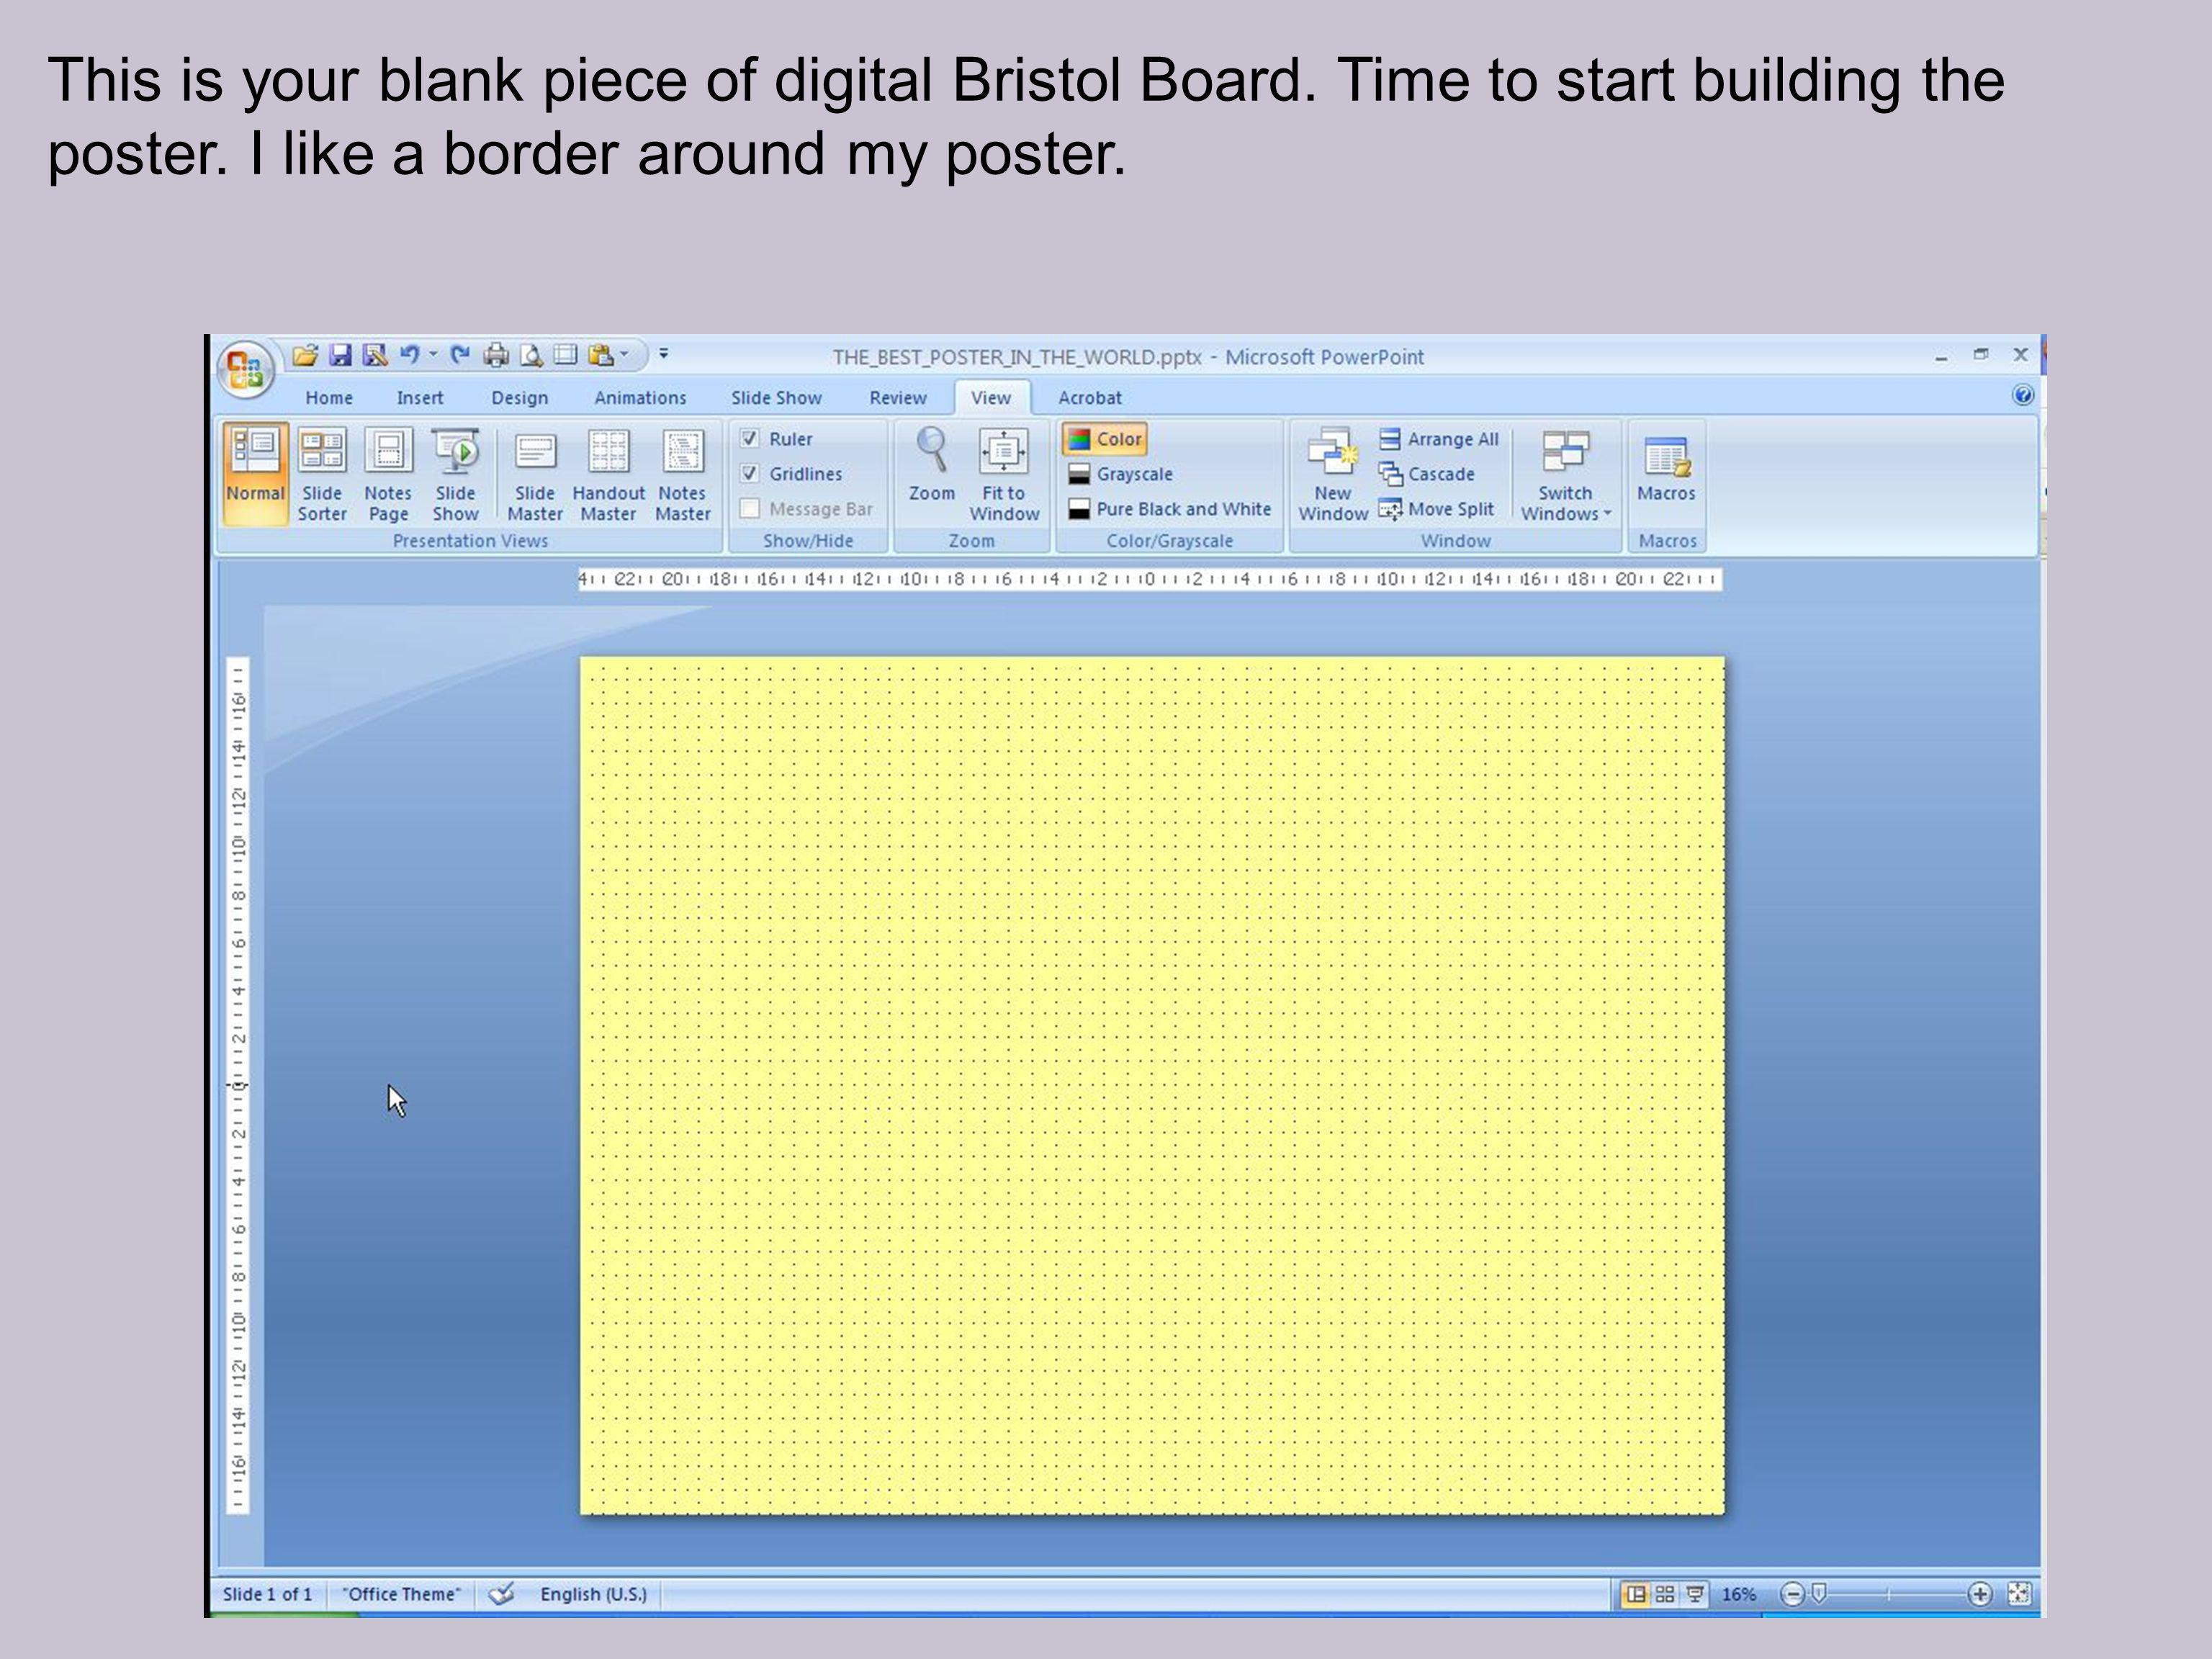 This is your blank piece of digital Bristol Board